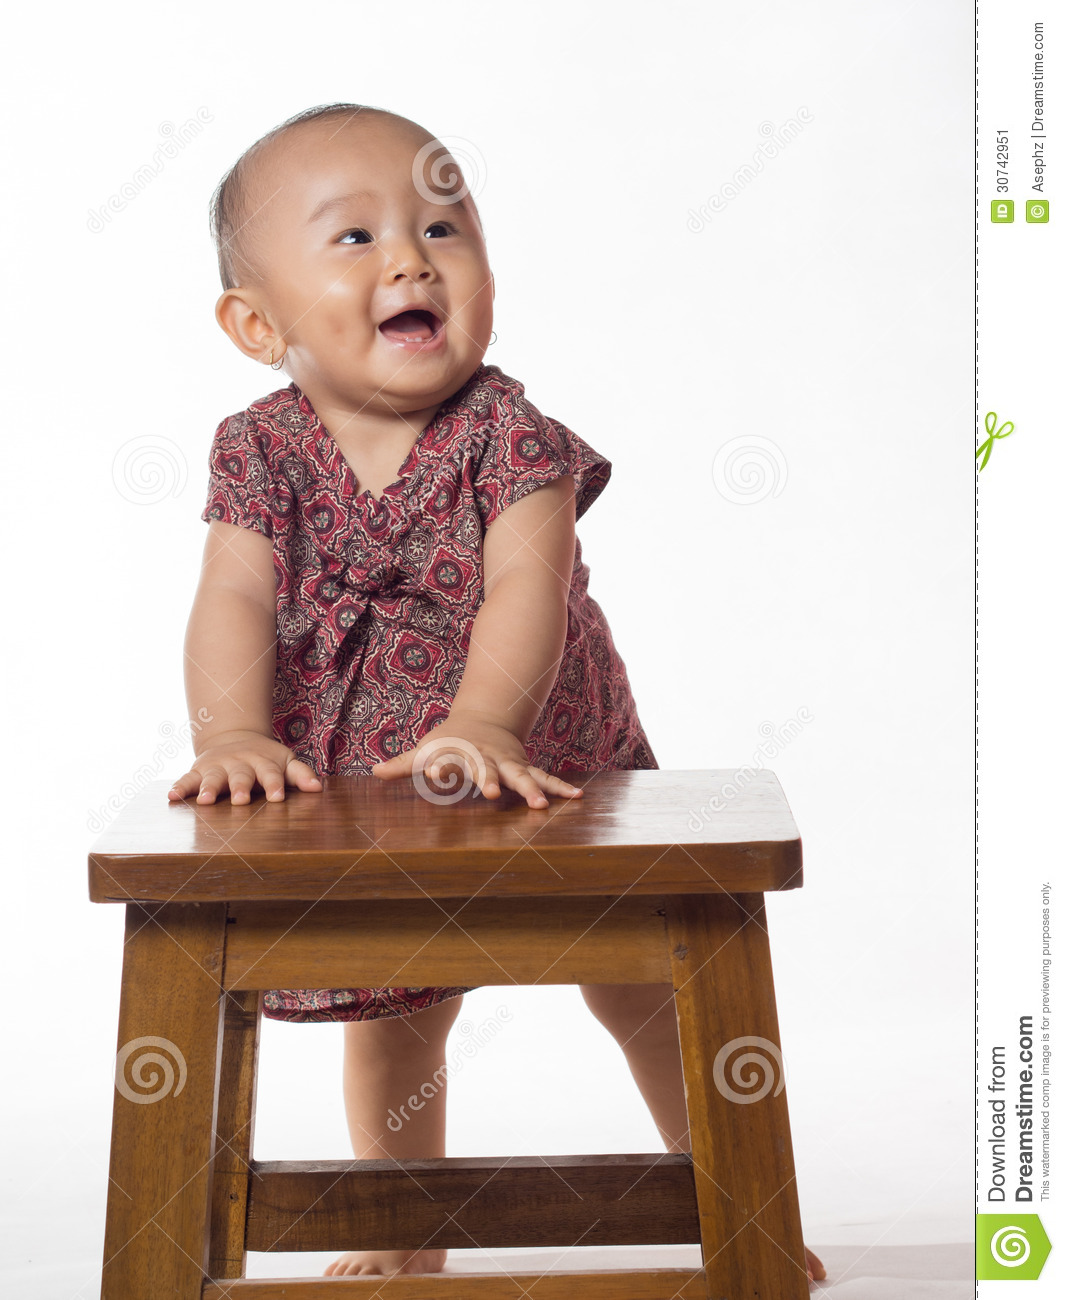 Baby Learning To Stand Stock Image Image 30742951